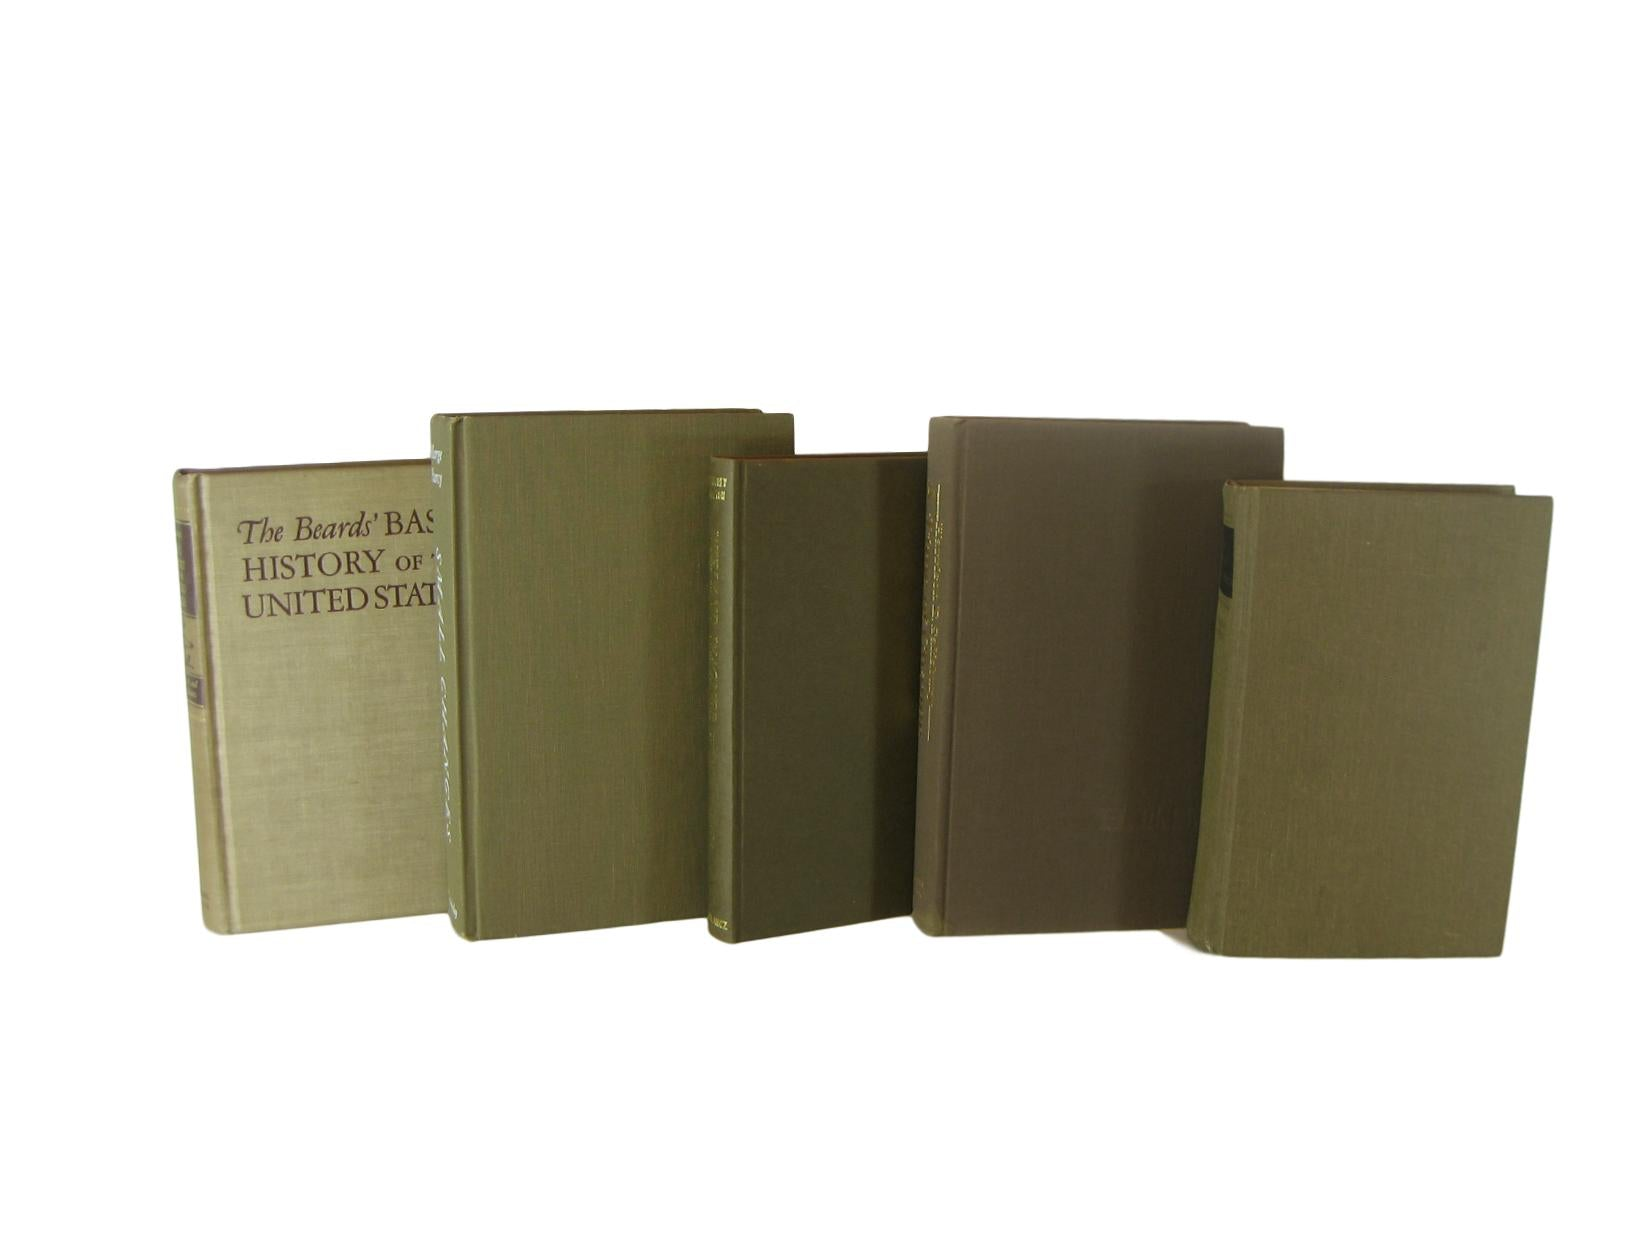 Brown Books for Farmhouse Book Decor, S/5 - Decades of Vintage